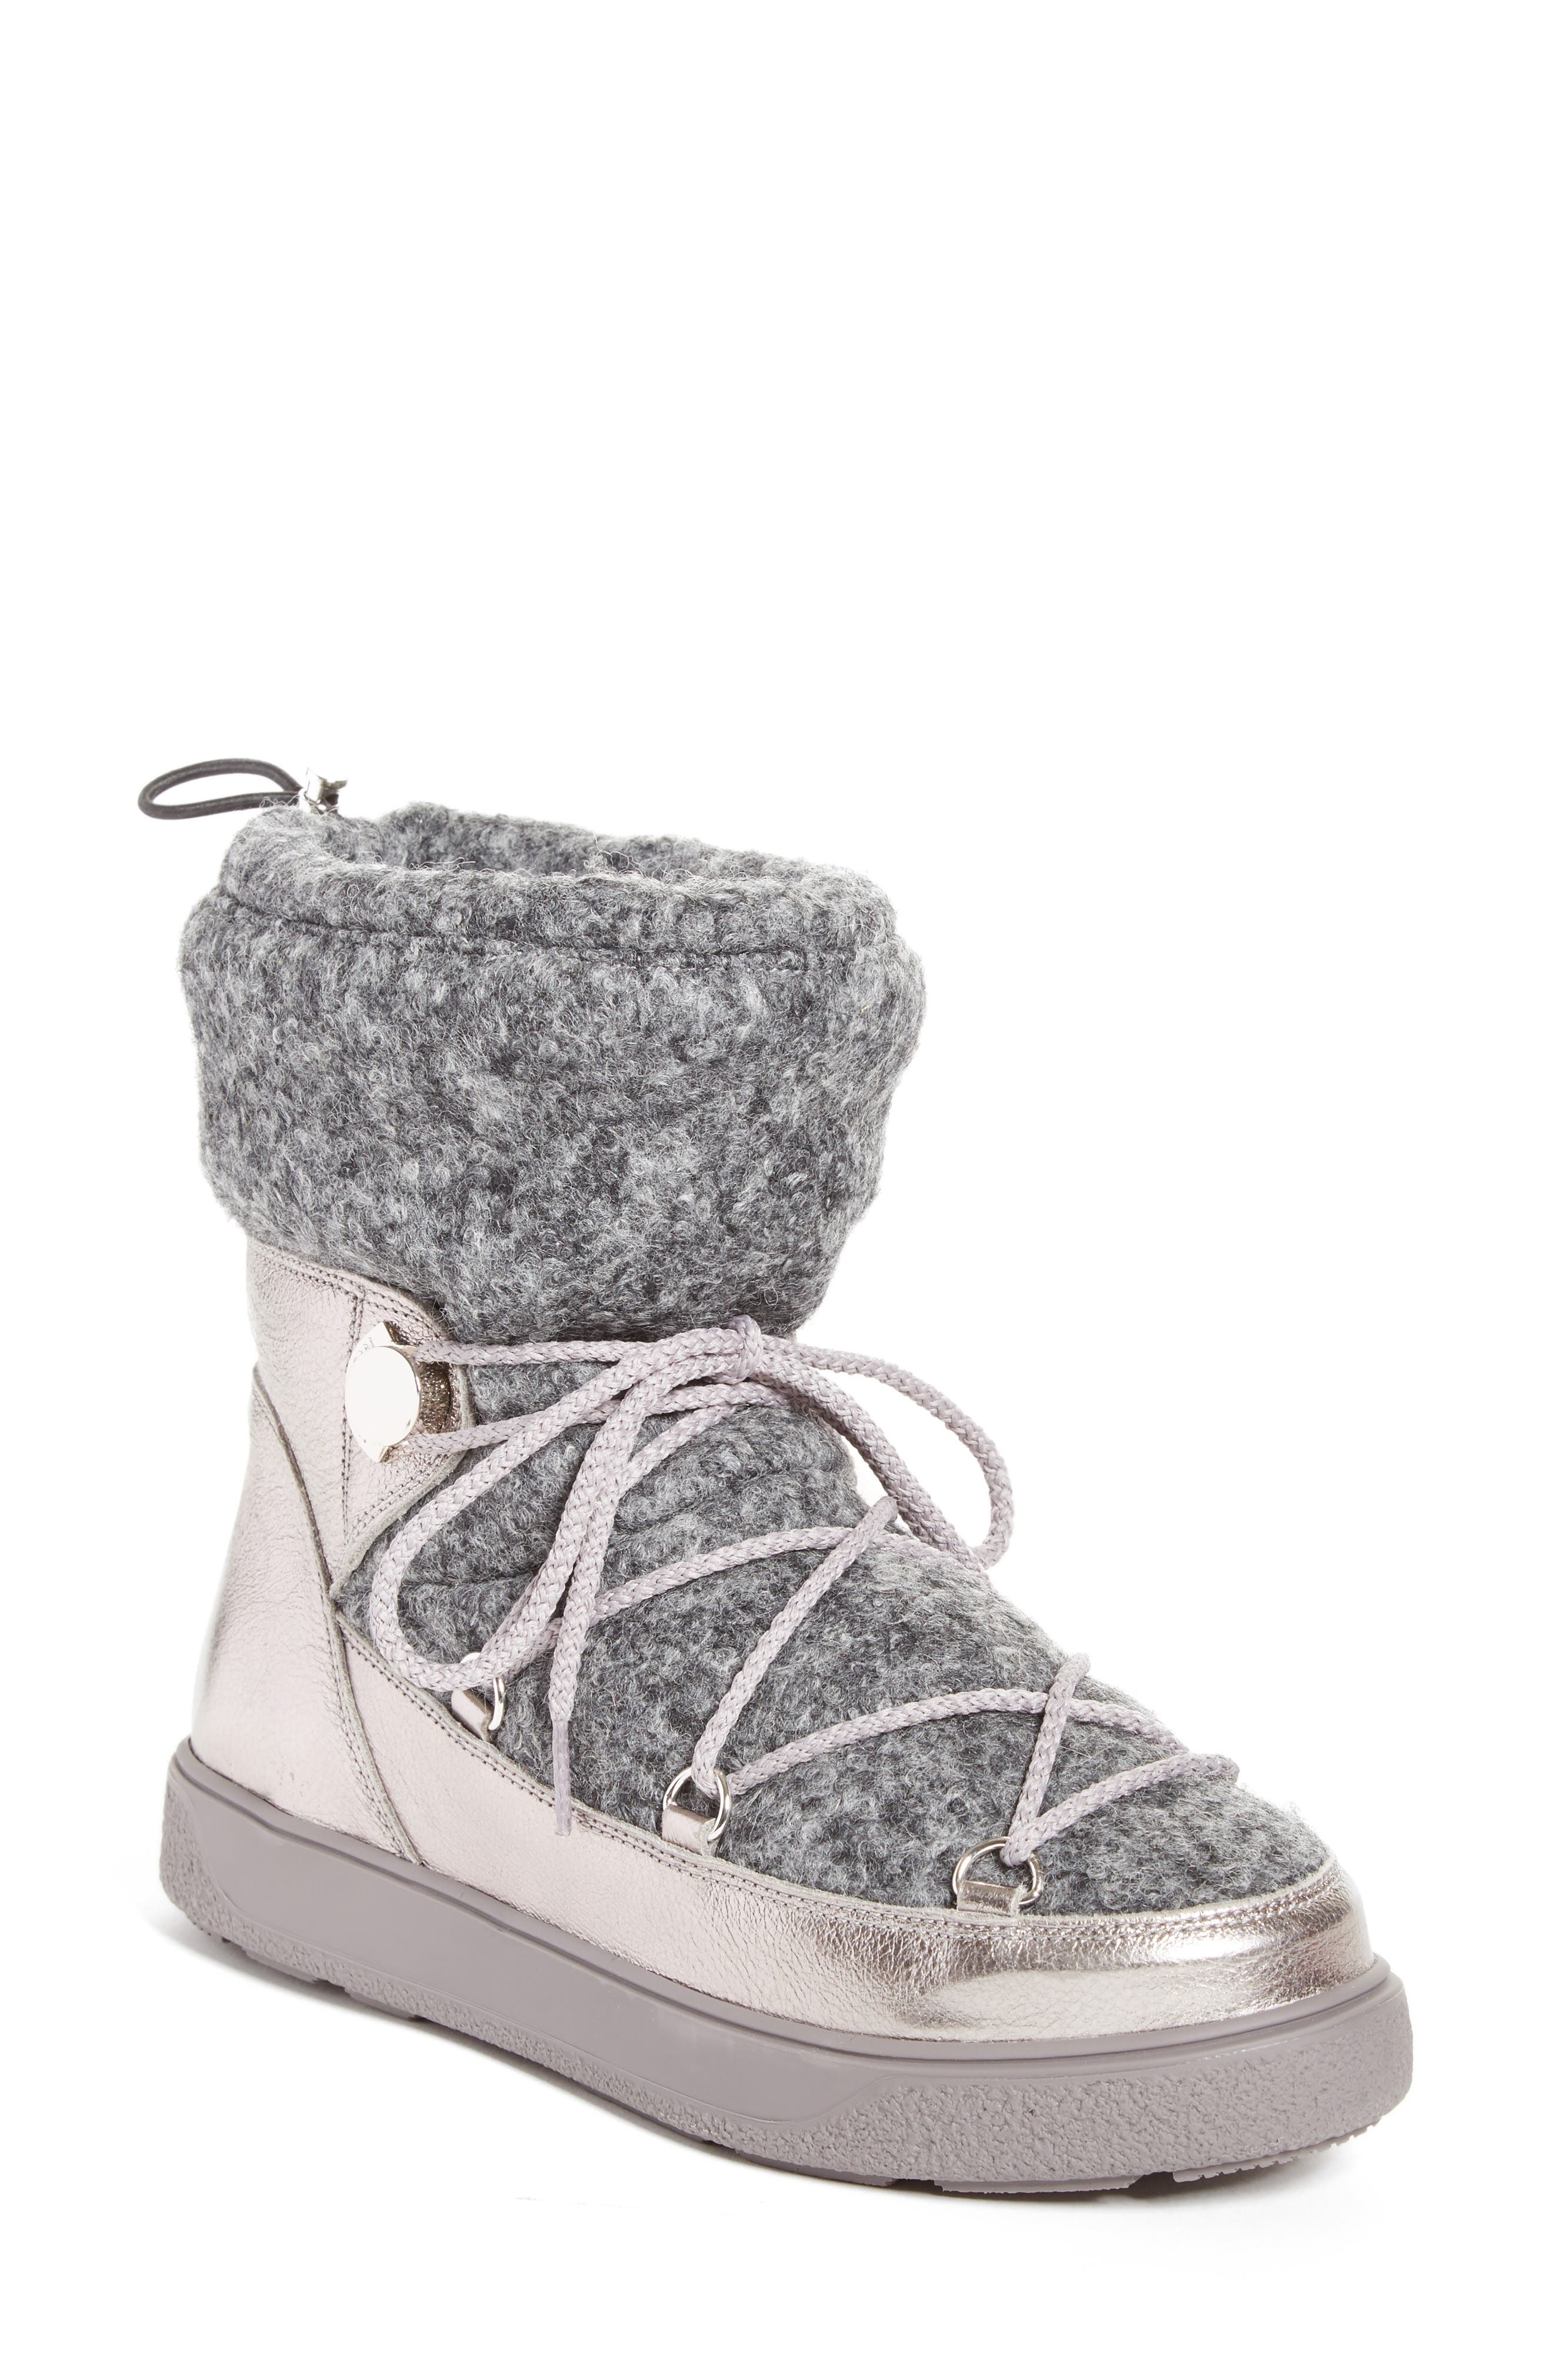 Moncler Ynnaf Boiled Wool Lined Snow Boot (Women)